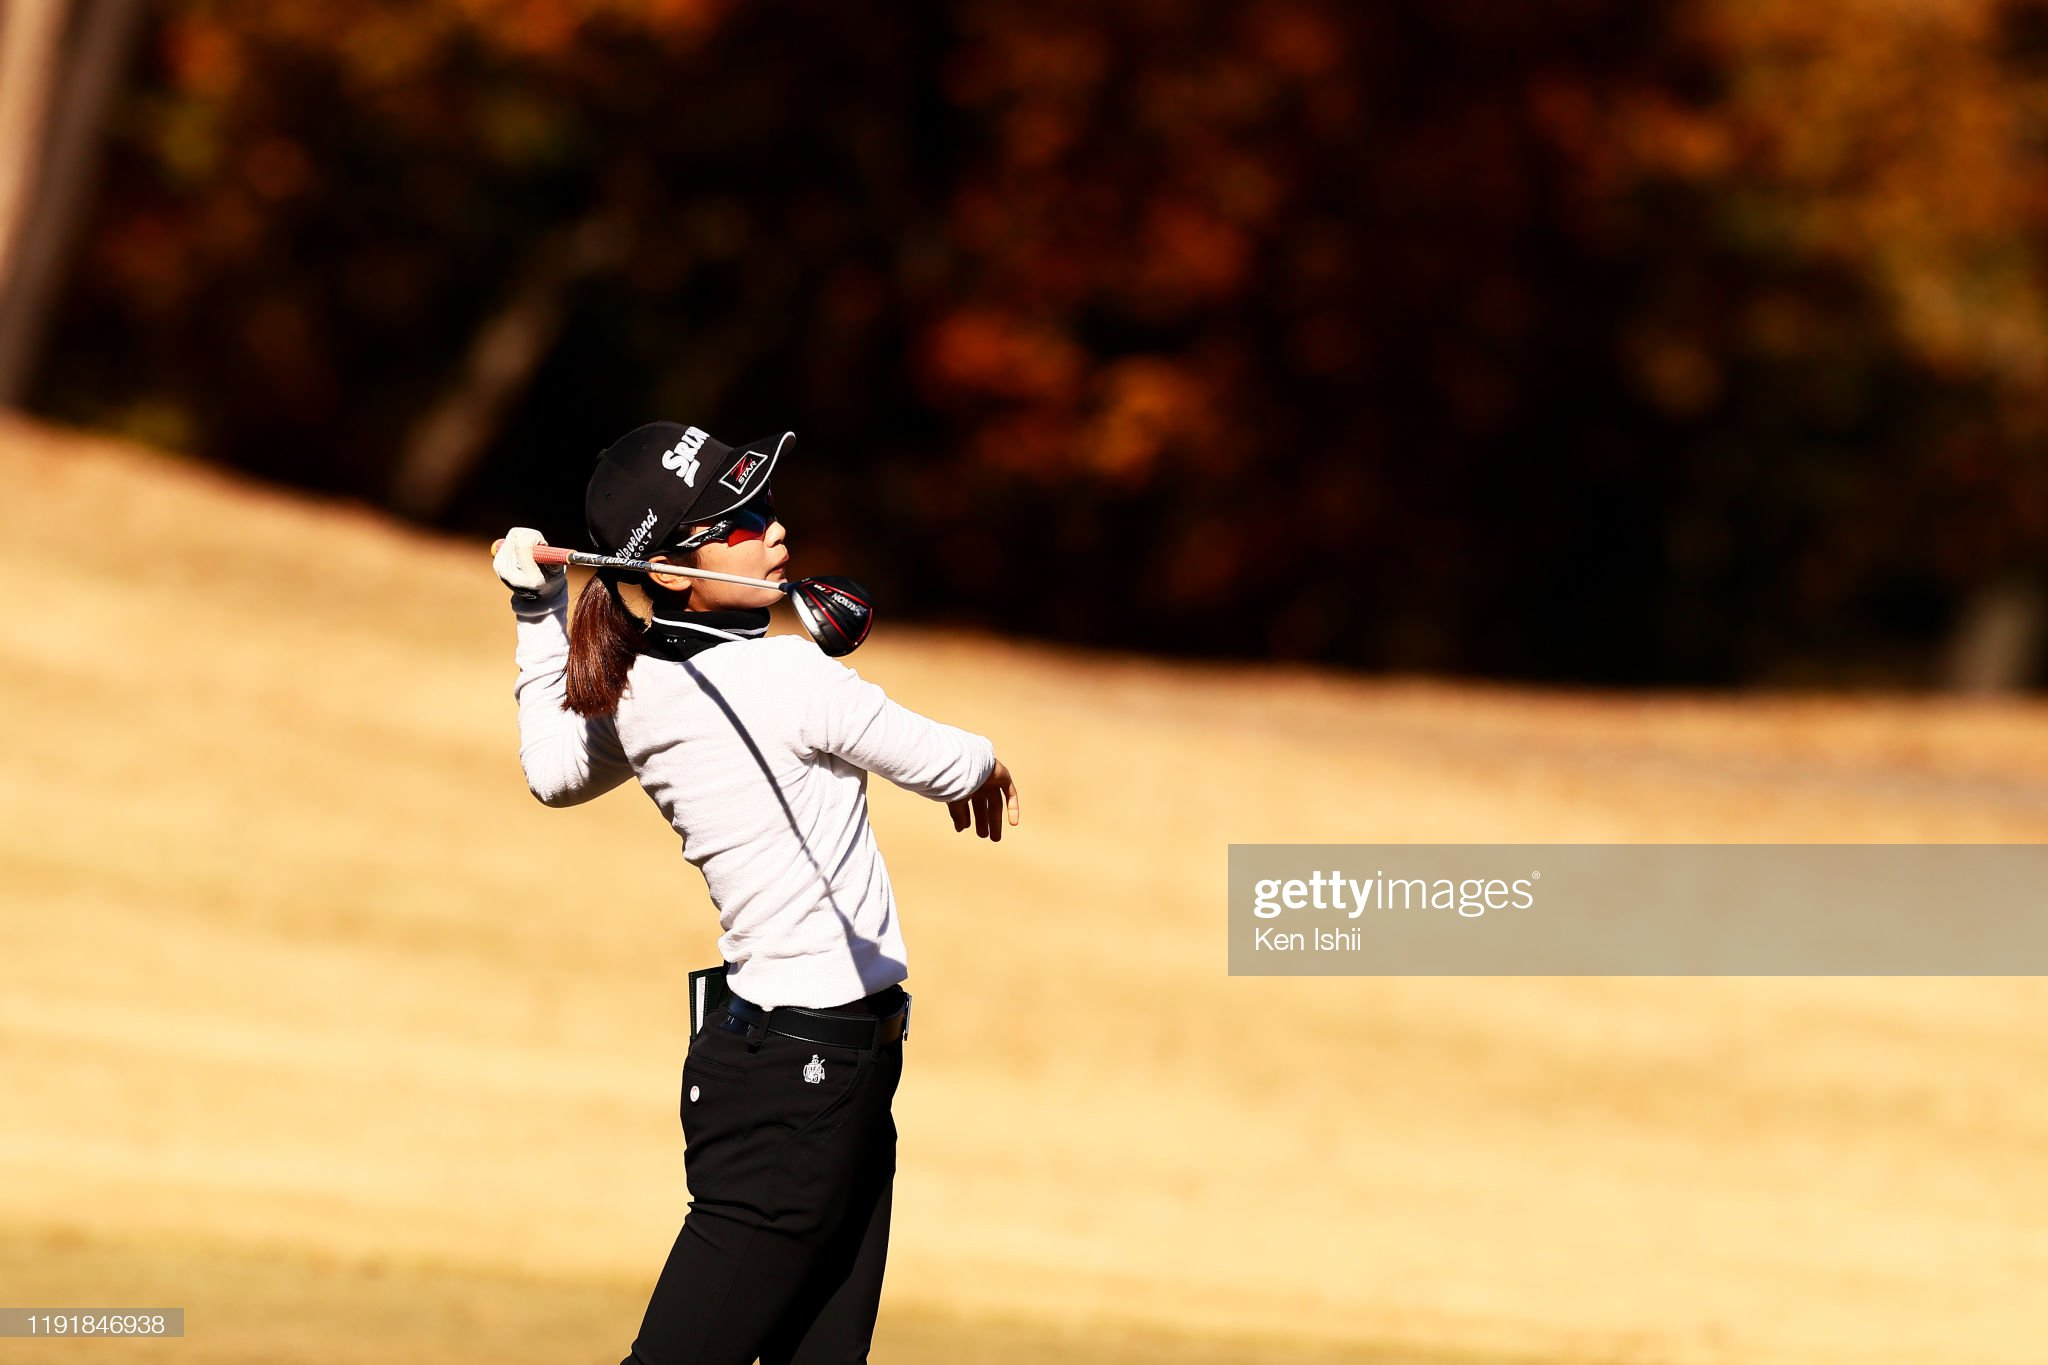 https://media.gettyimages.com/photos/yuka-yasuda-of-japan-hits-her-second-shot-on-the-4th-hole-during-the-picture-id1191846938?s=2048x2048